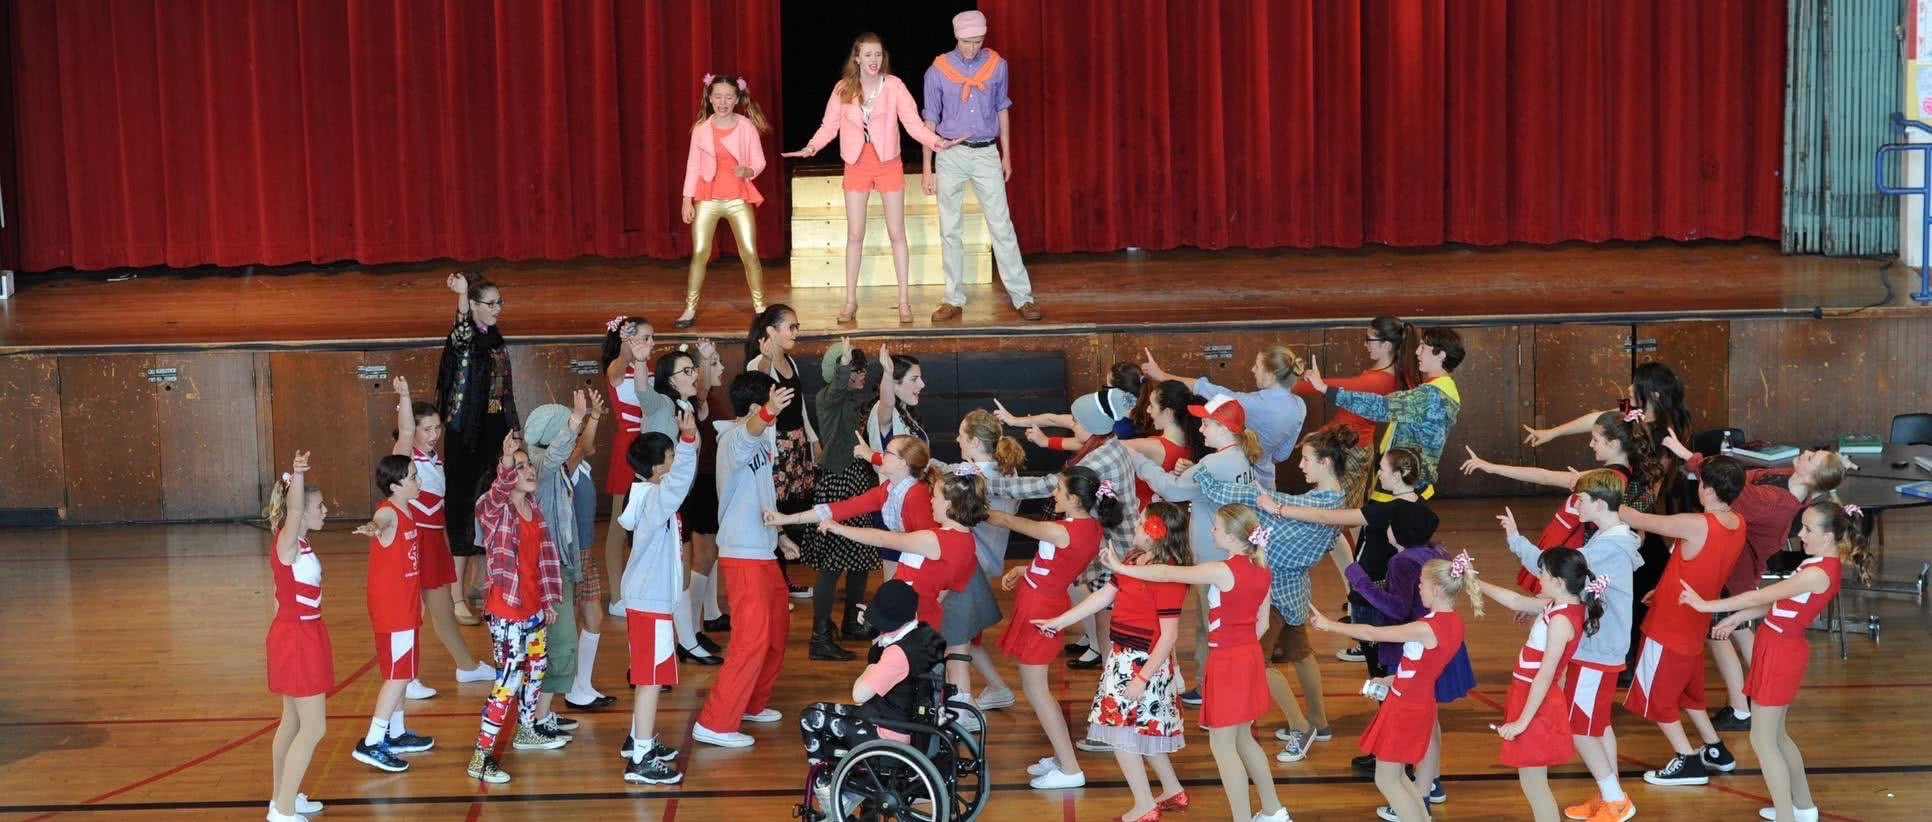 Tomorrow Youth Rep Banner image, from High School Musical, 2015